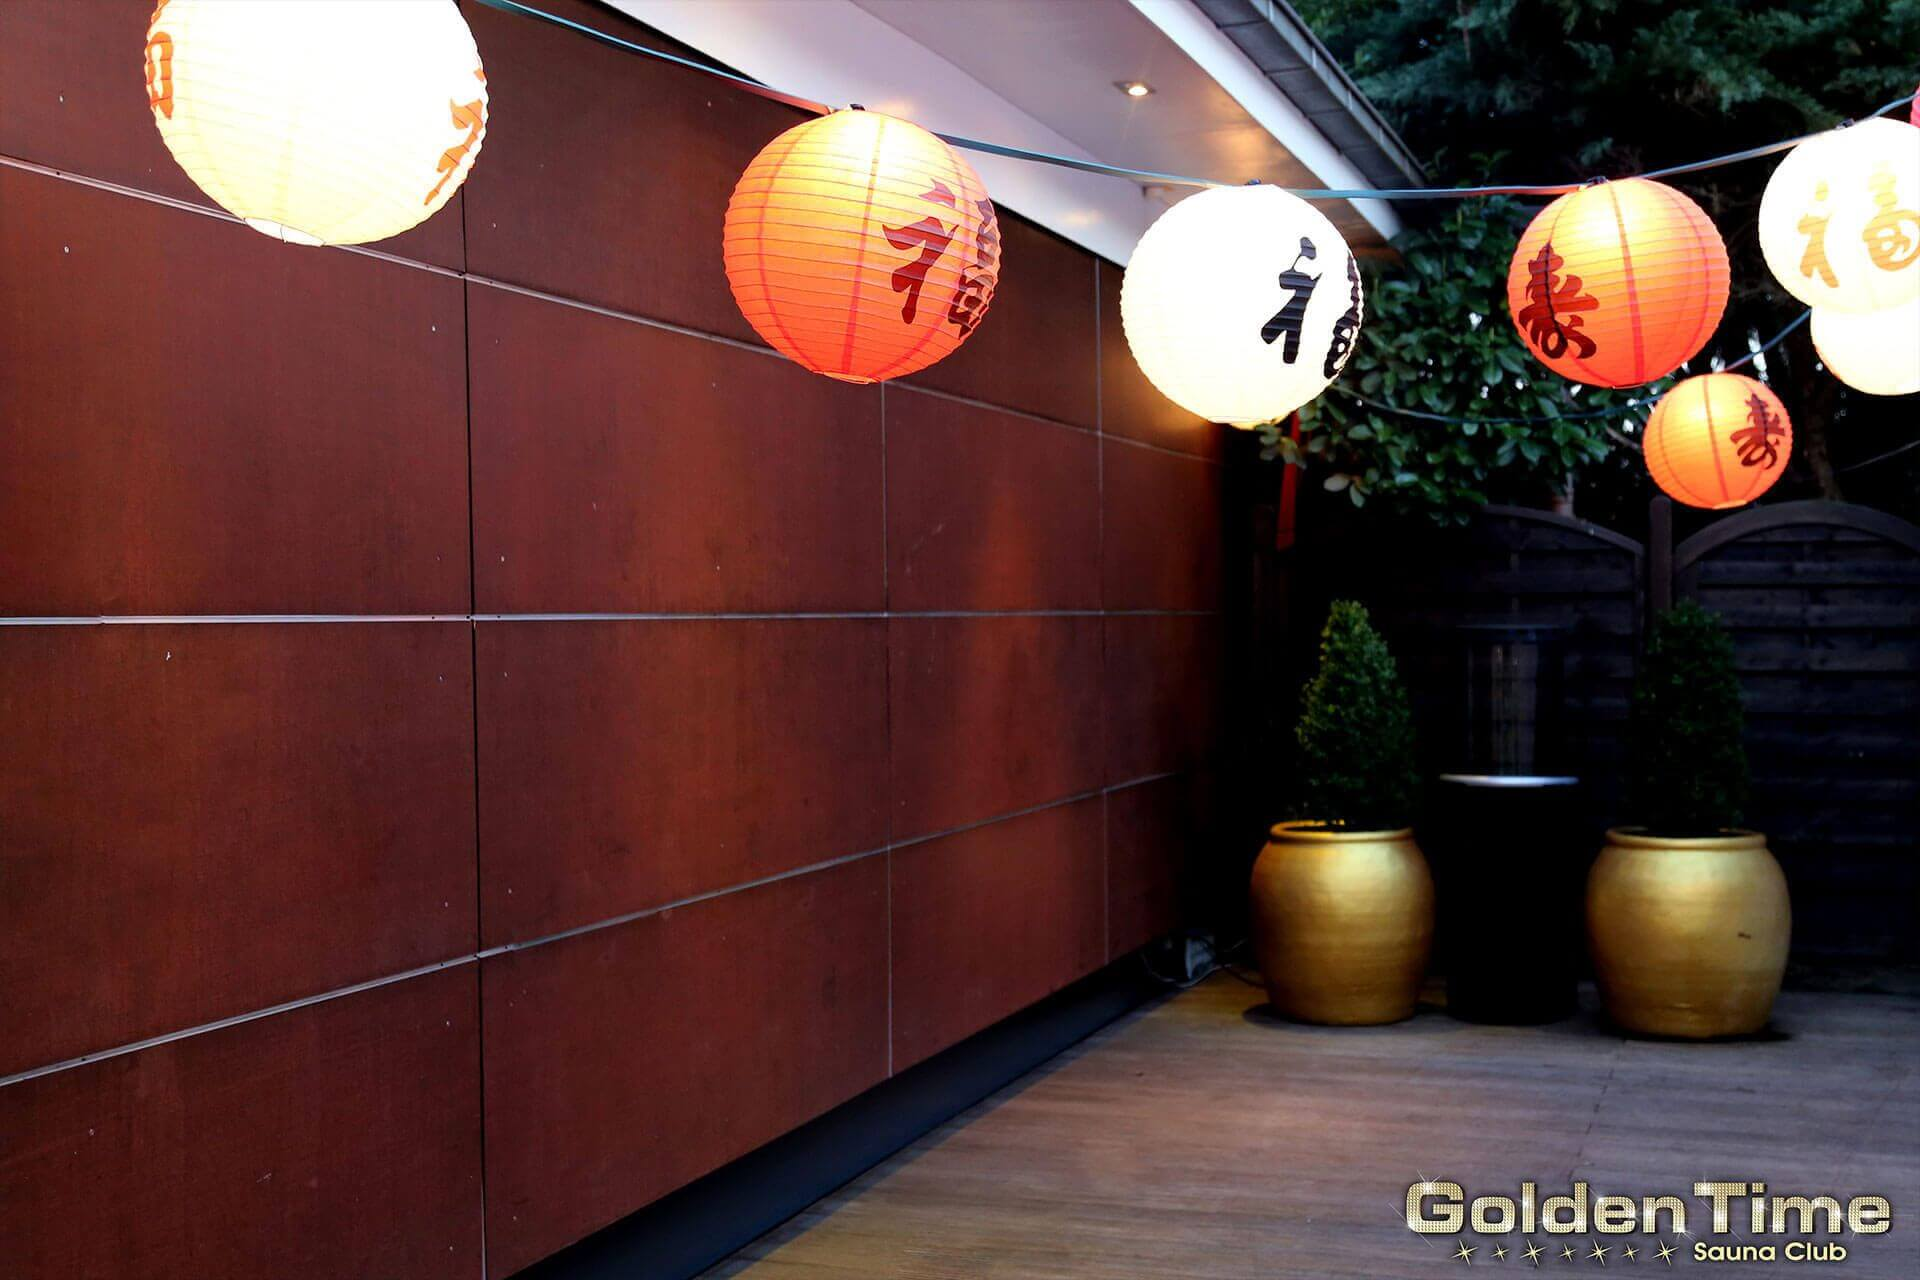 01-china-new-year-pic-25-goldentime-saunaclub.jpg